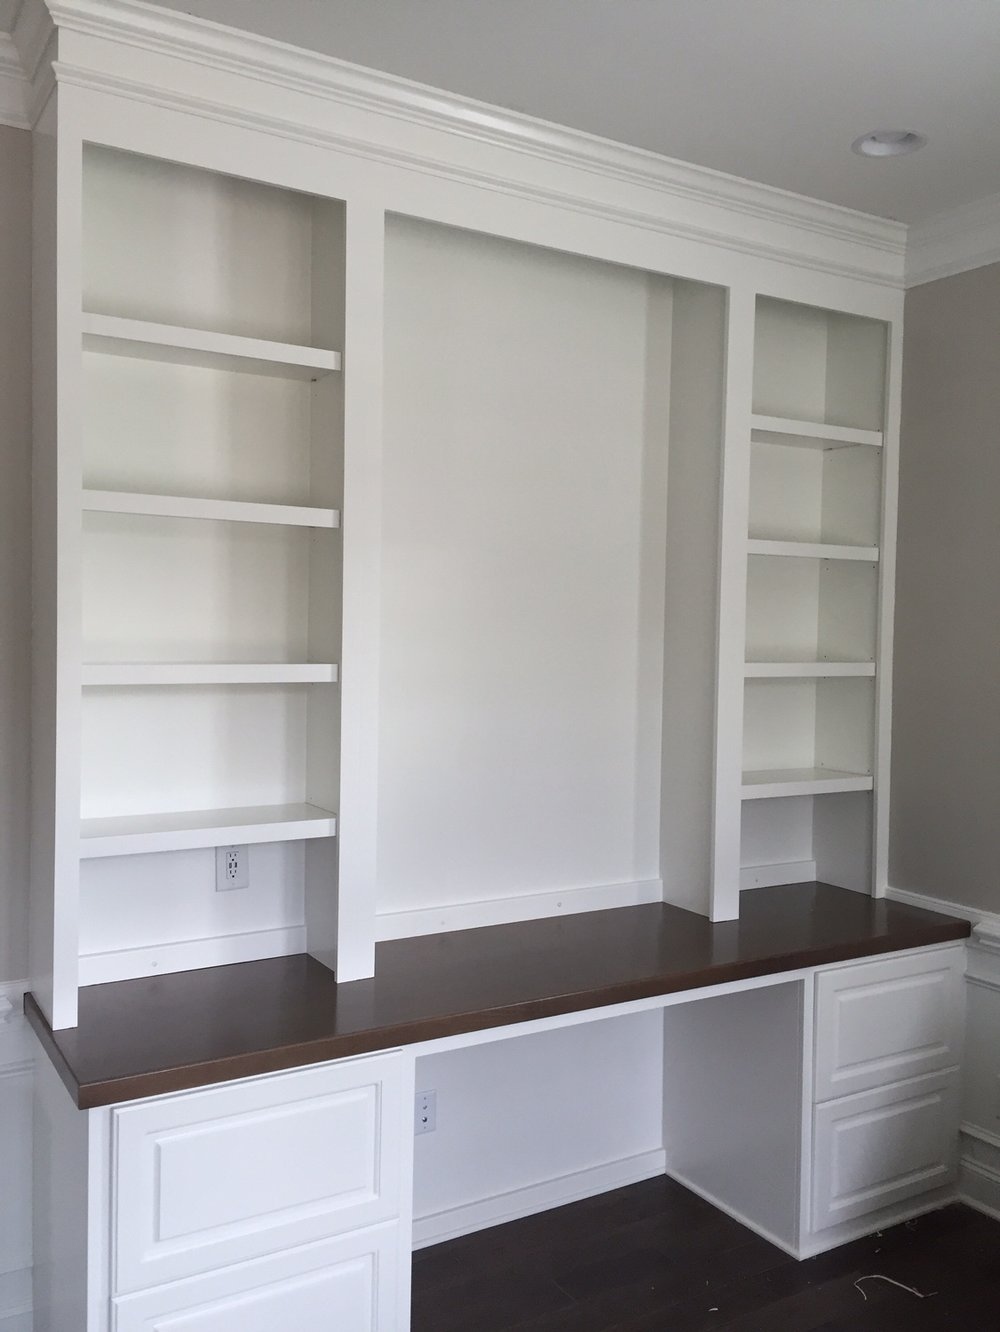 Custom Desk with Raised Panel Filing Drawers, Adjustable Shelves & Maple Stain Countertop